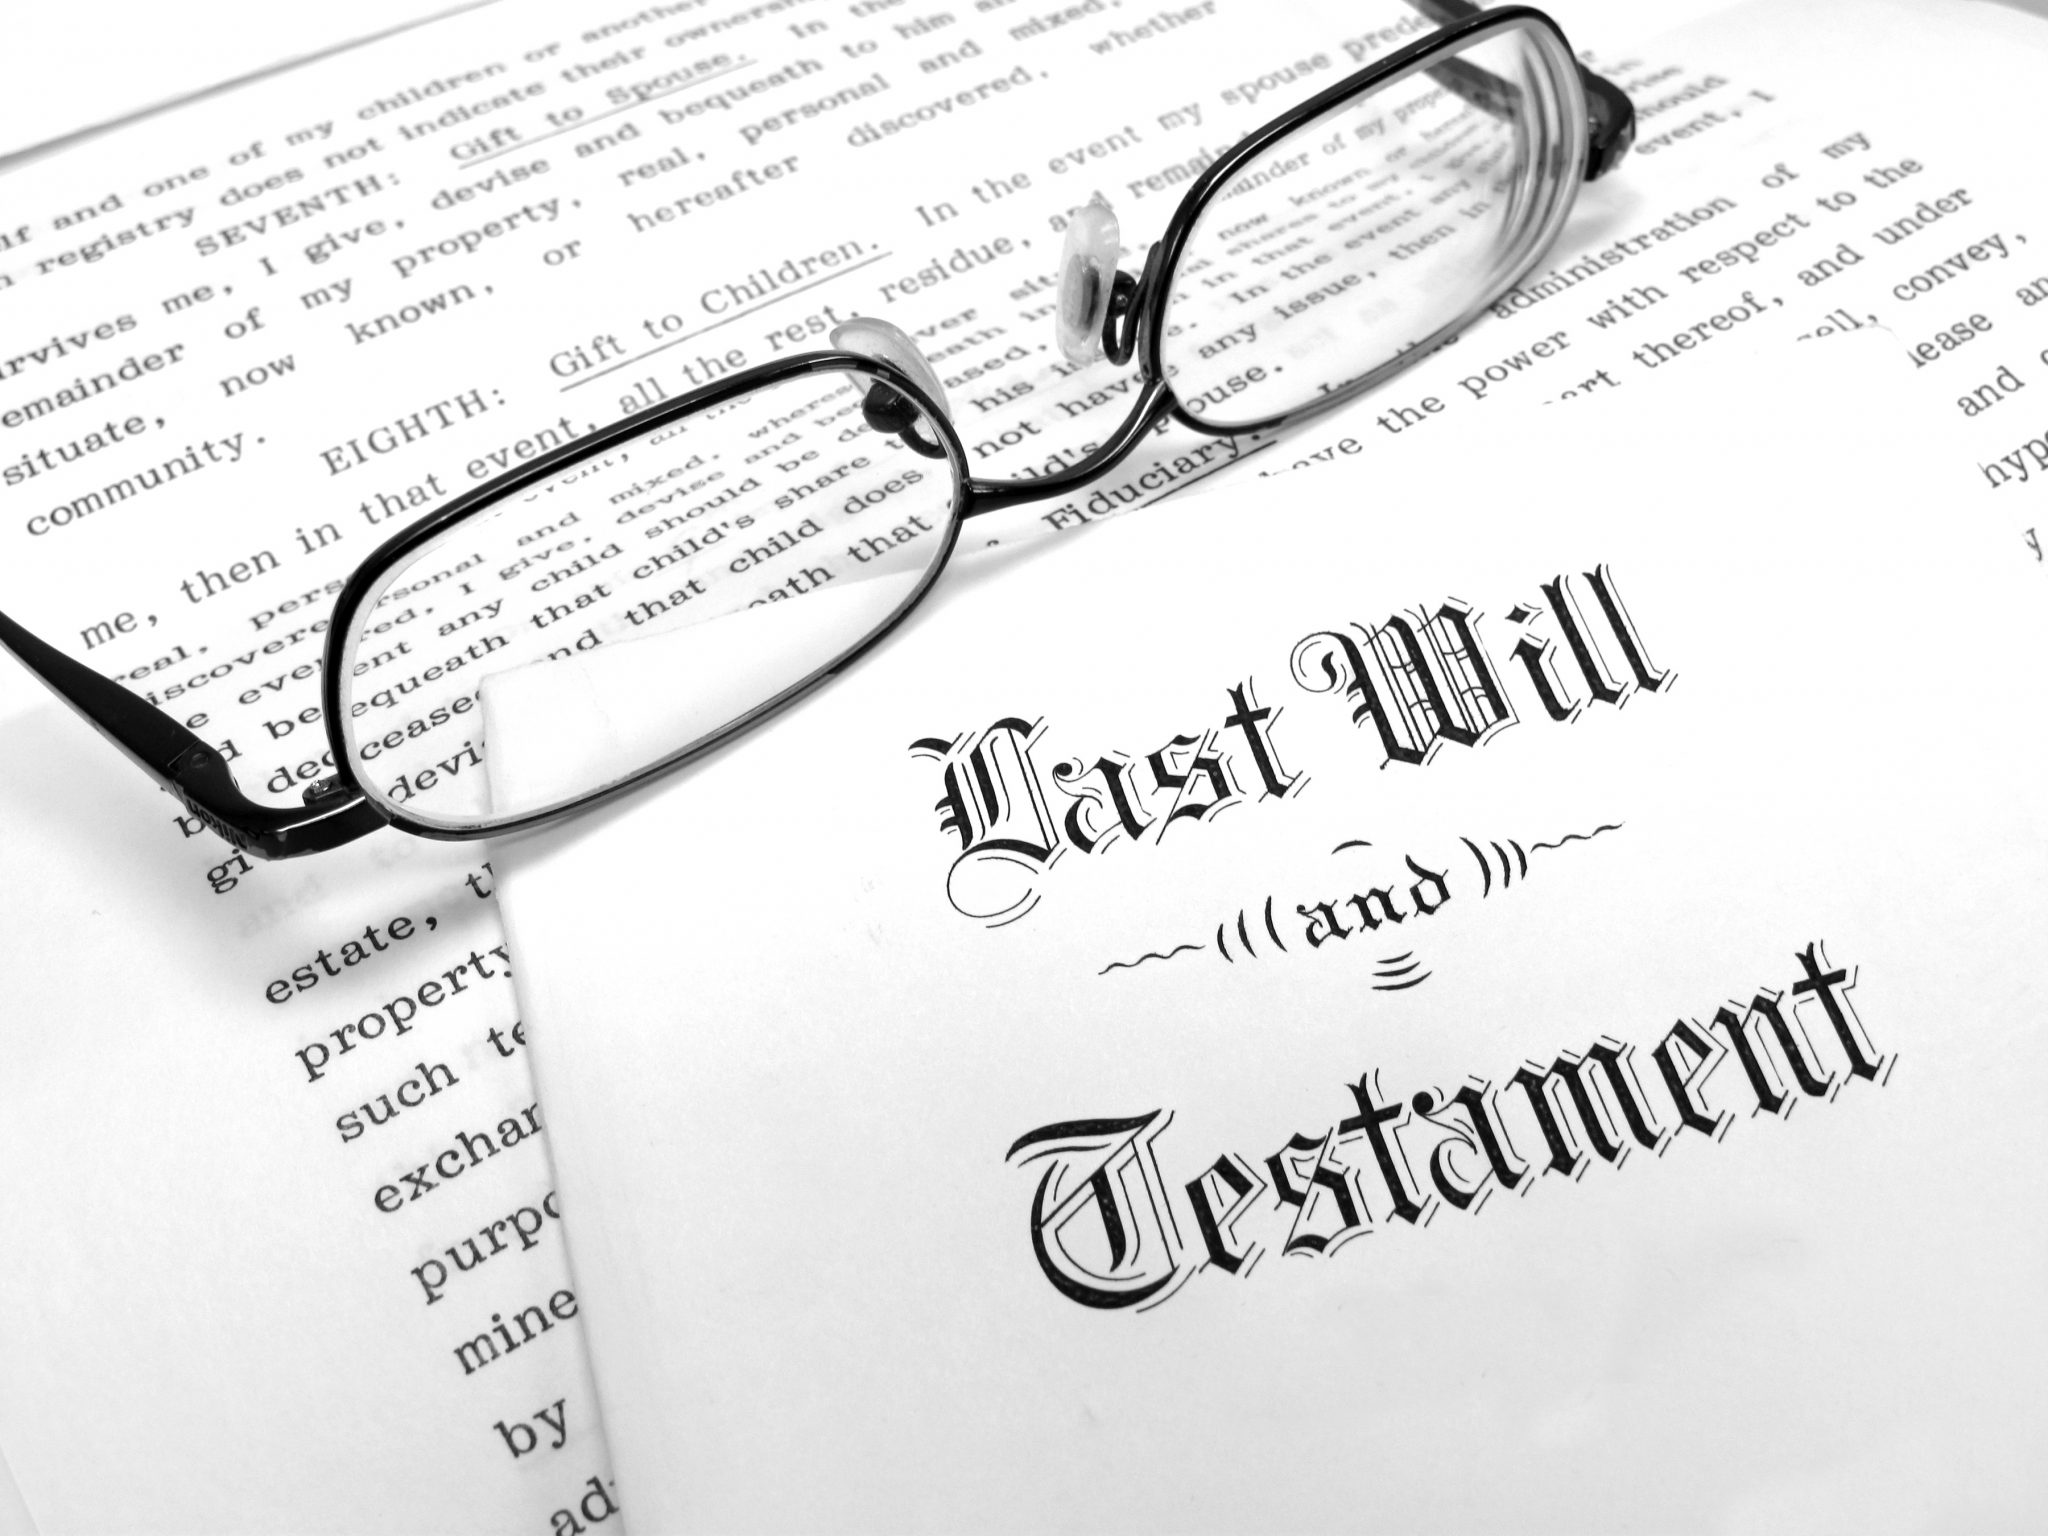 """A white envelope with text reading """"Last Will and Testament"""" lying on top of a white document with black text. A pair of black wire-rimmed reading glasses rests on the document. The black eyeglasses cast a shadow on the document."""